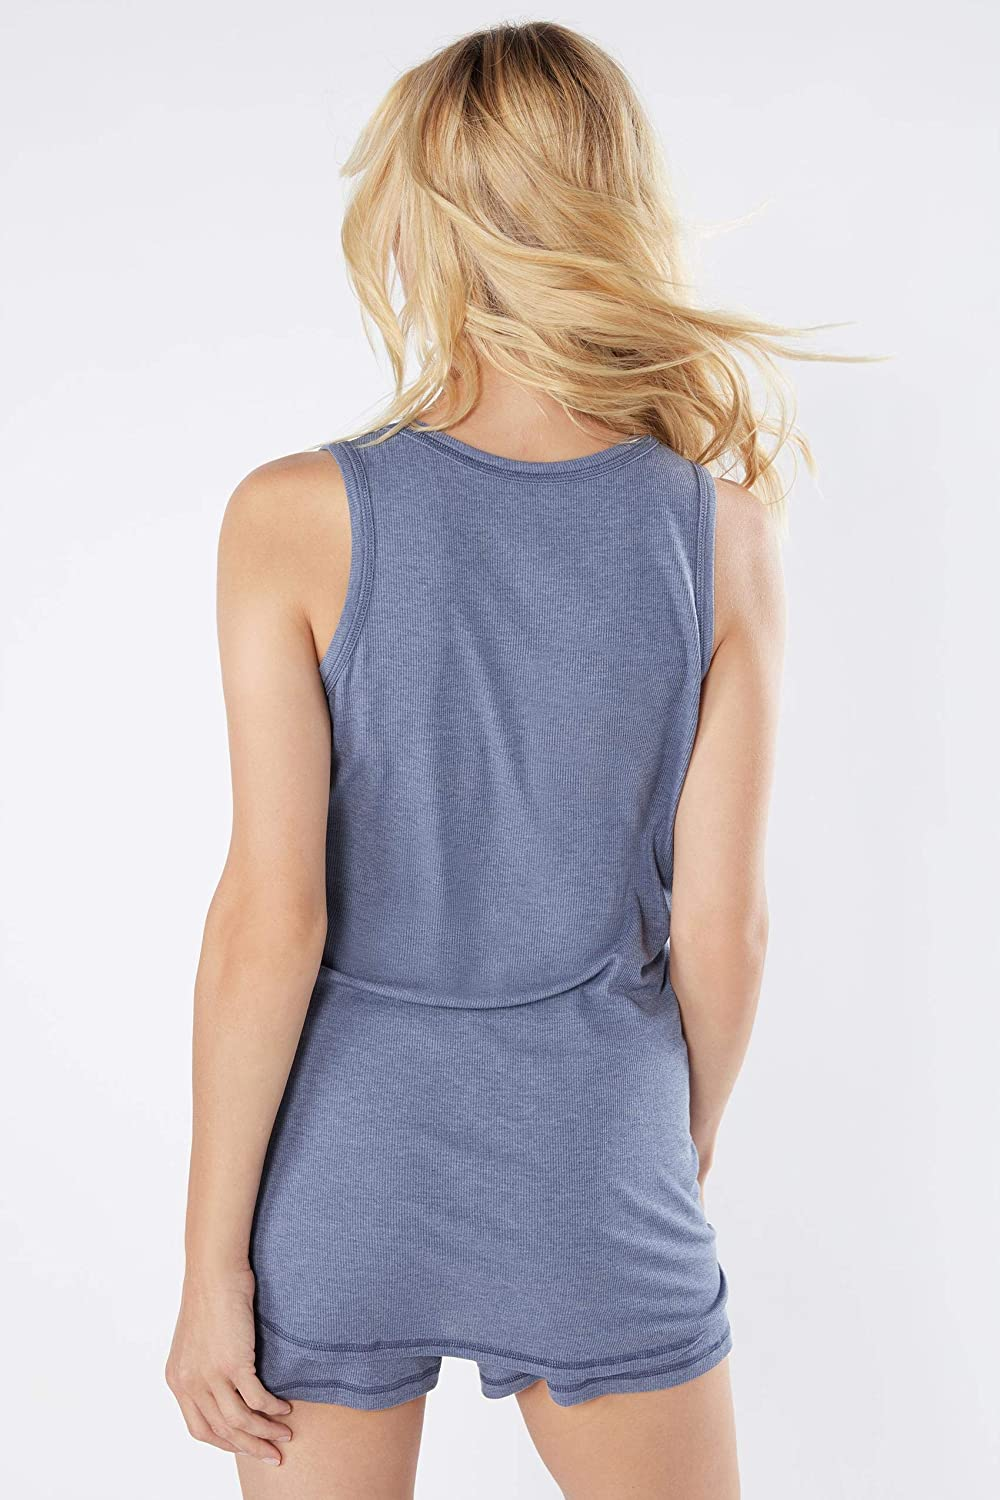 Intimissimi Womens Ribbed Modal Blend Camisole